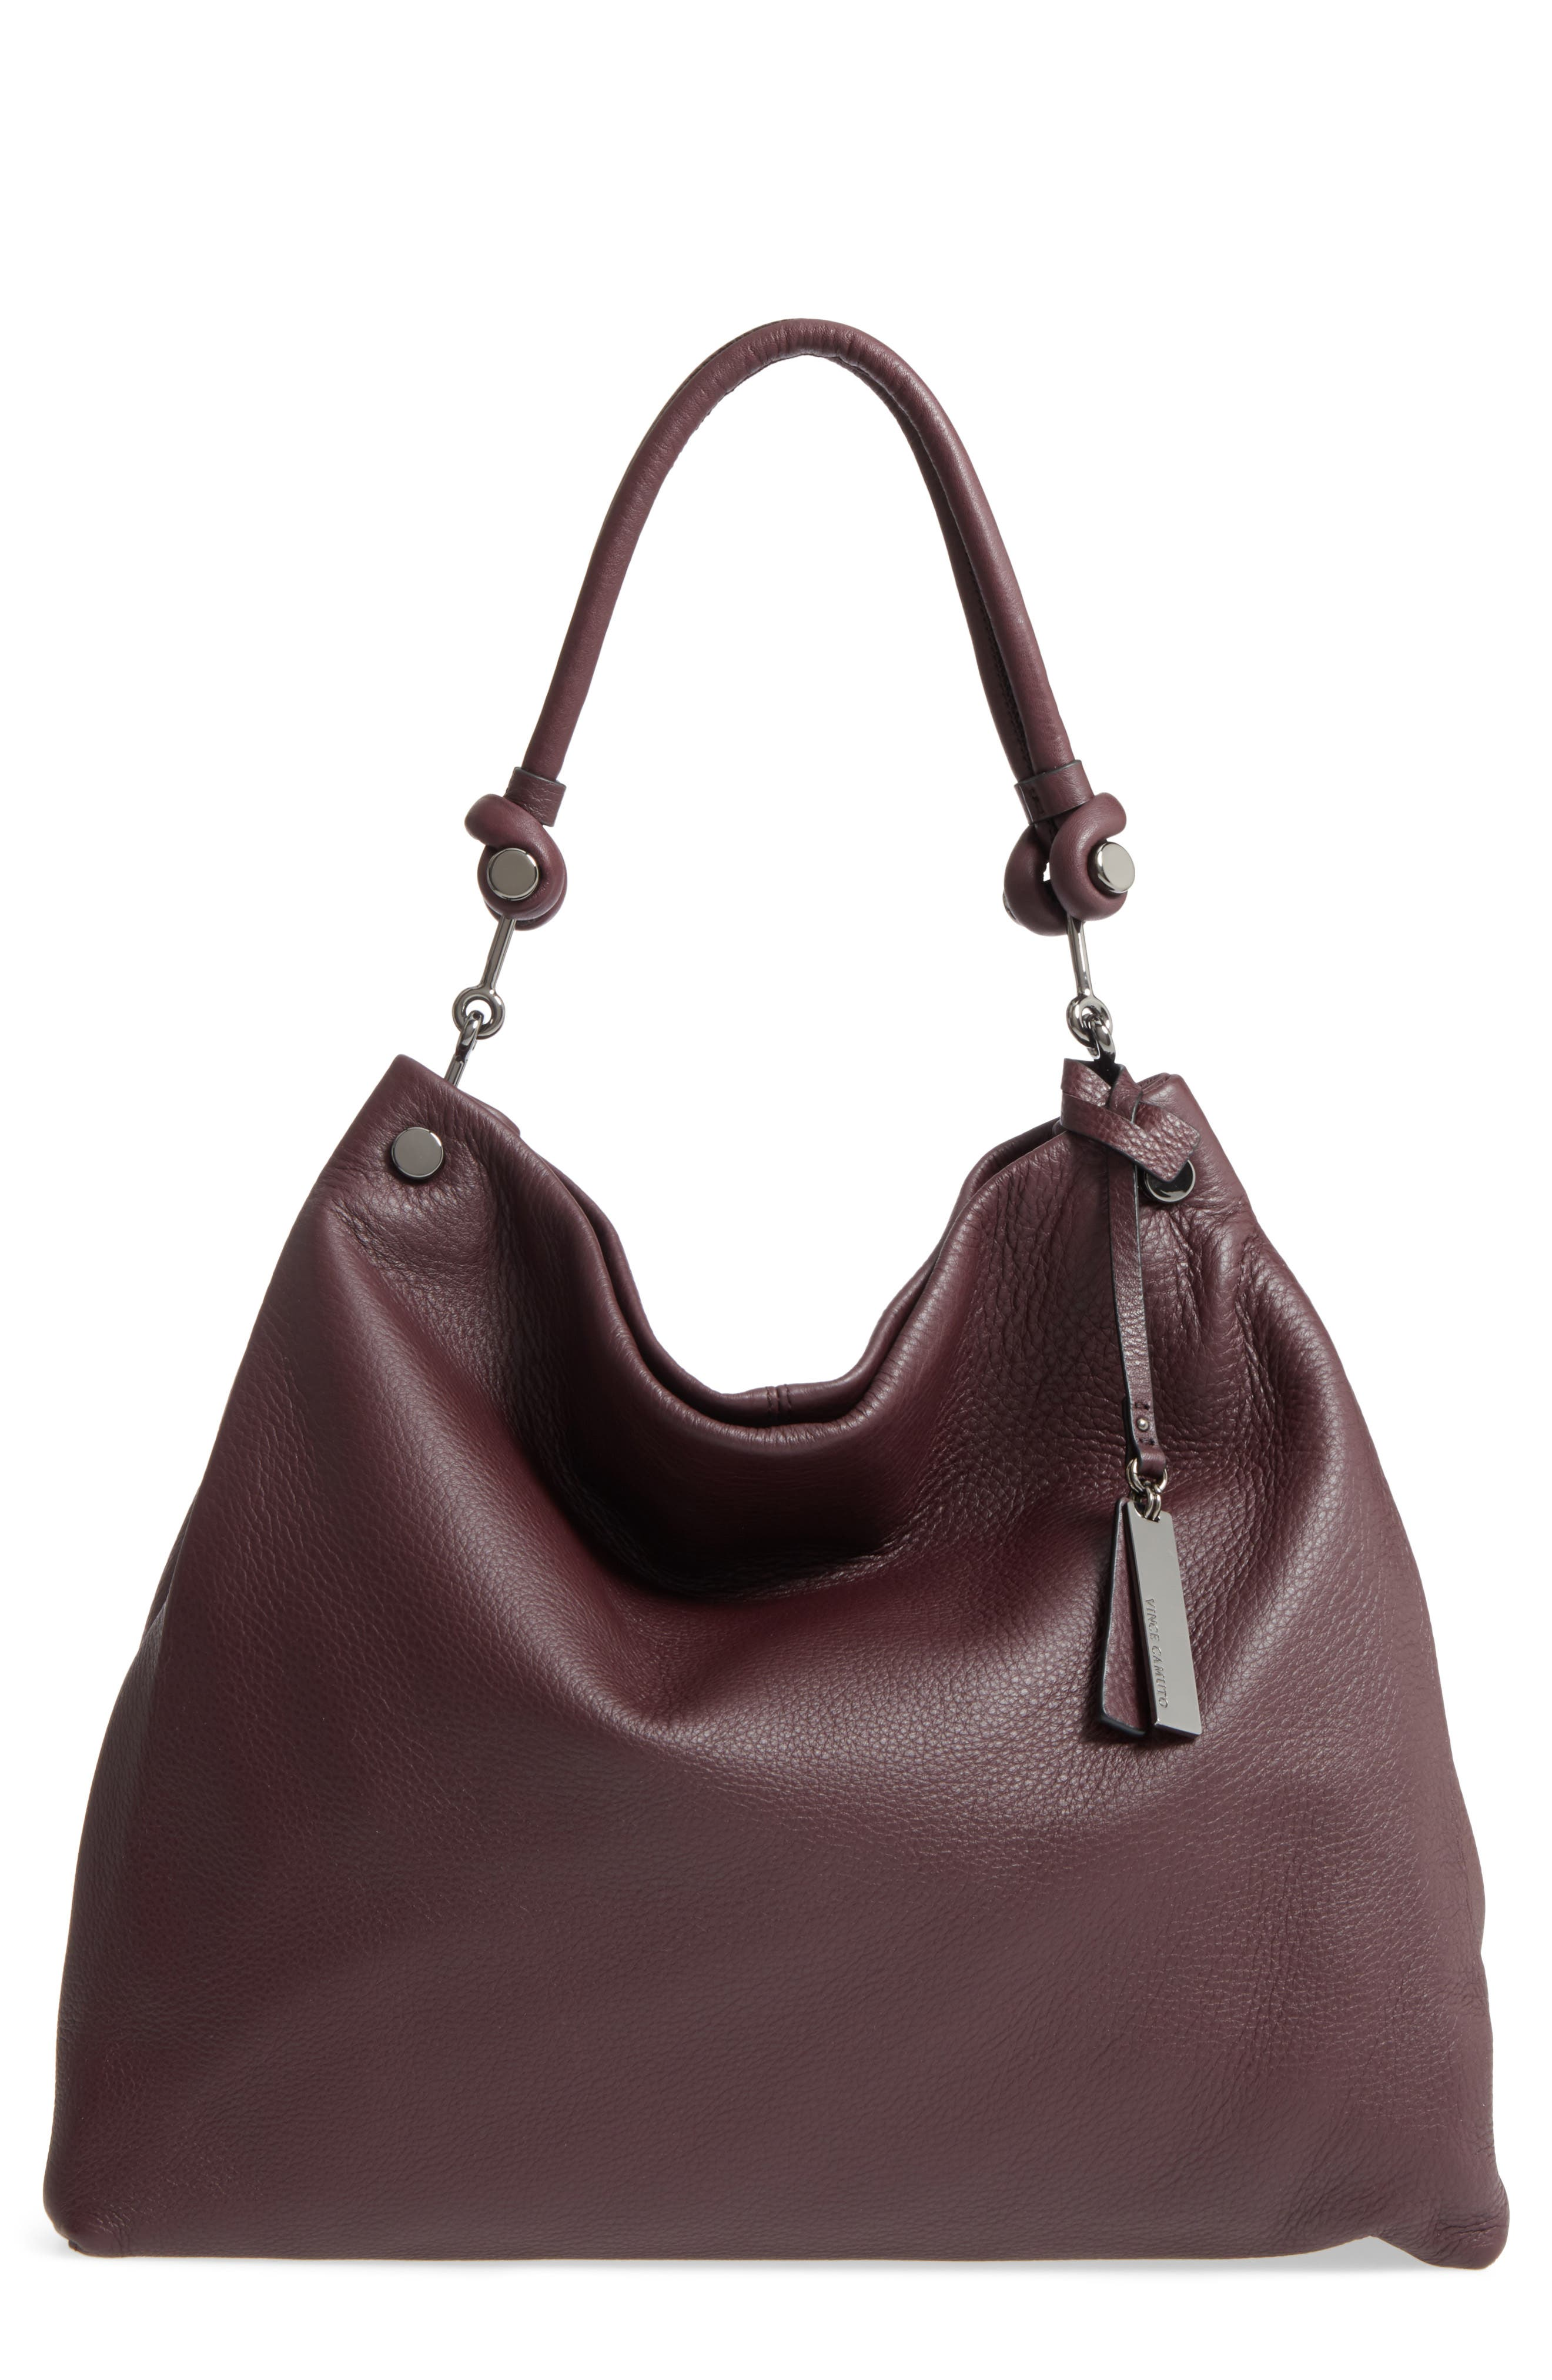 Main Image - Vince Camuto 'Ruell' Hobo